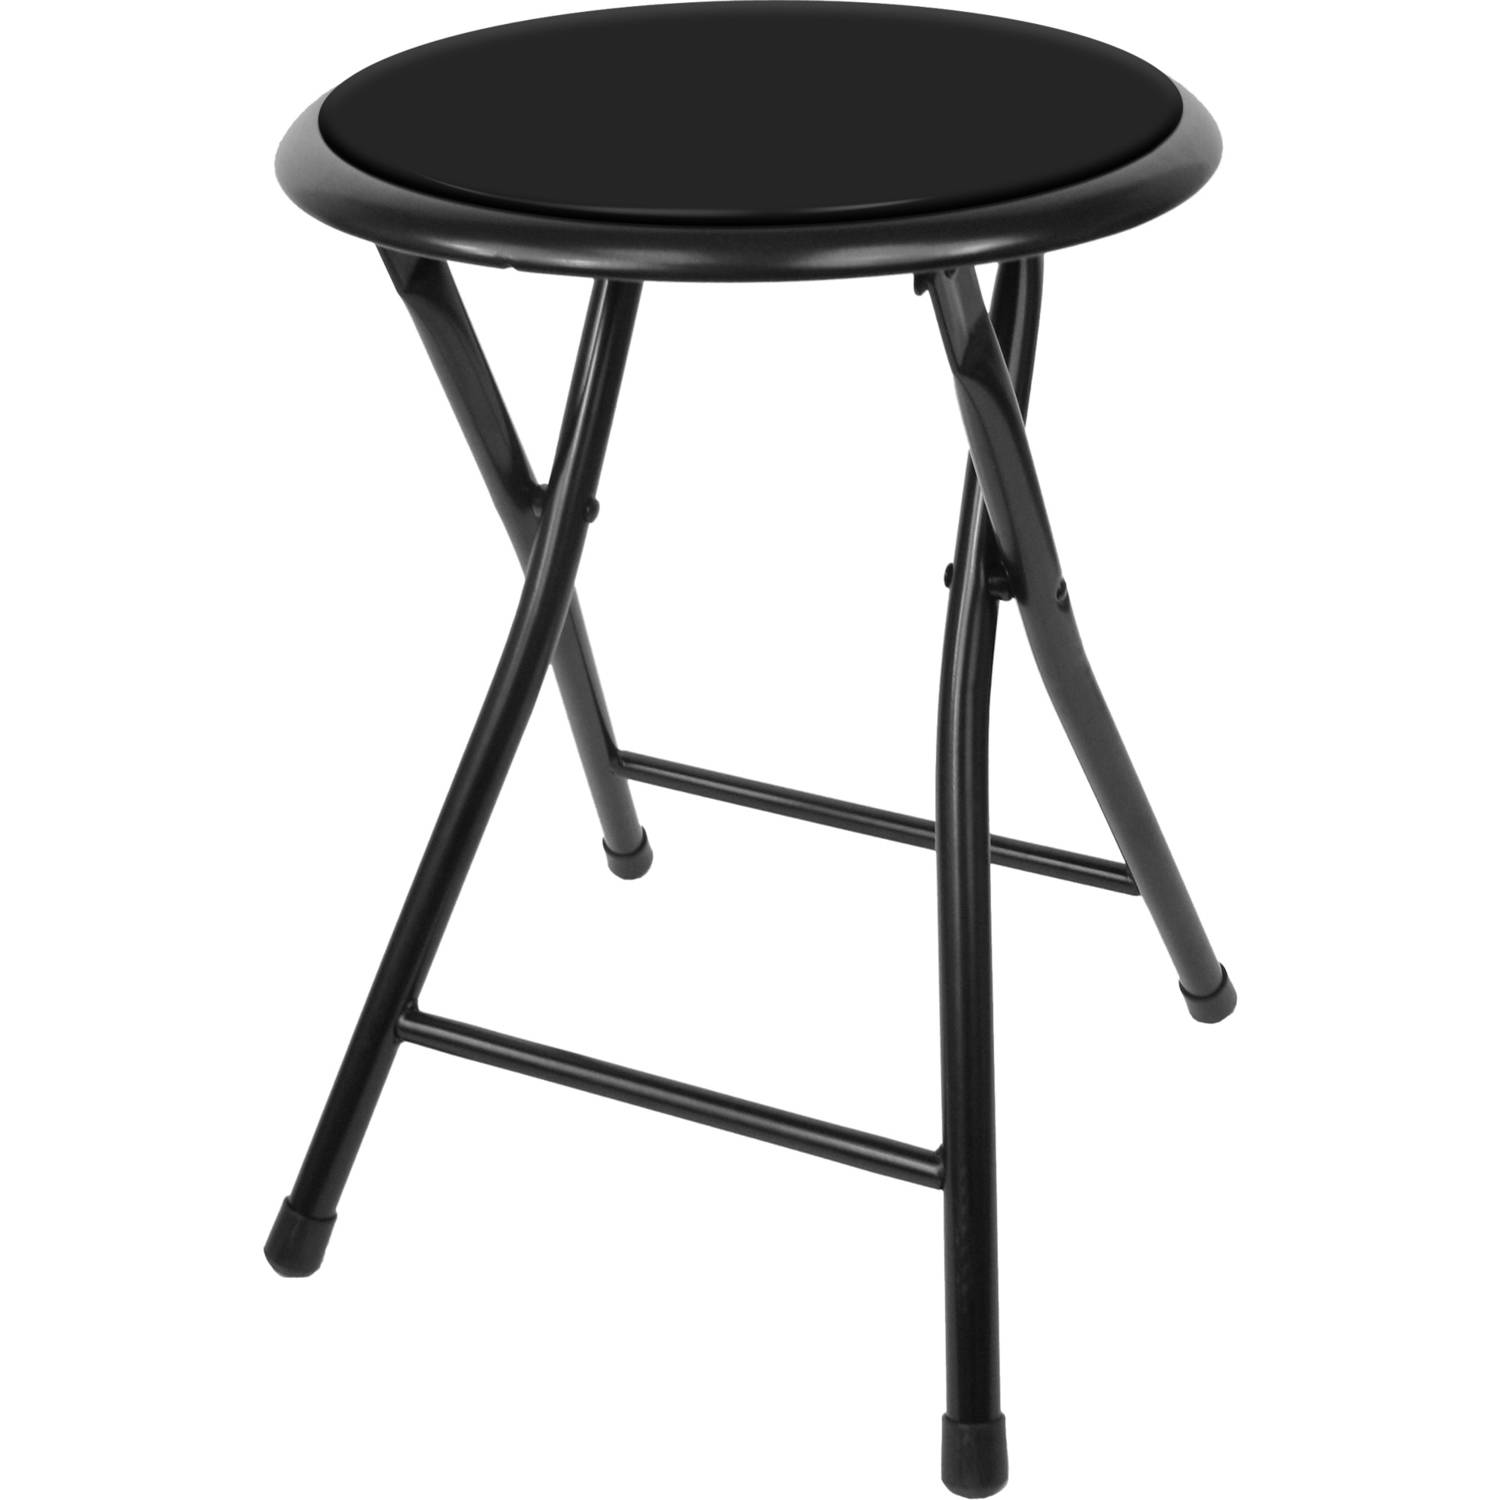 Folding Stool – Heavy Duty 18-Inch Collapsible Padded Round Stool with 300 Pound Capacity for Dorm, Rec Room or Gameroom by Trademark Home (Black)